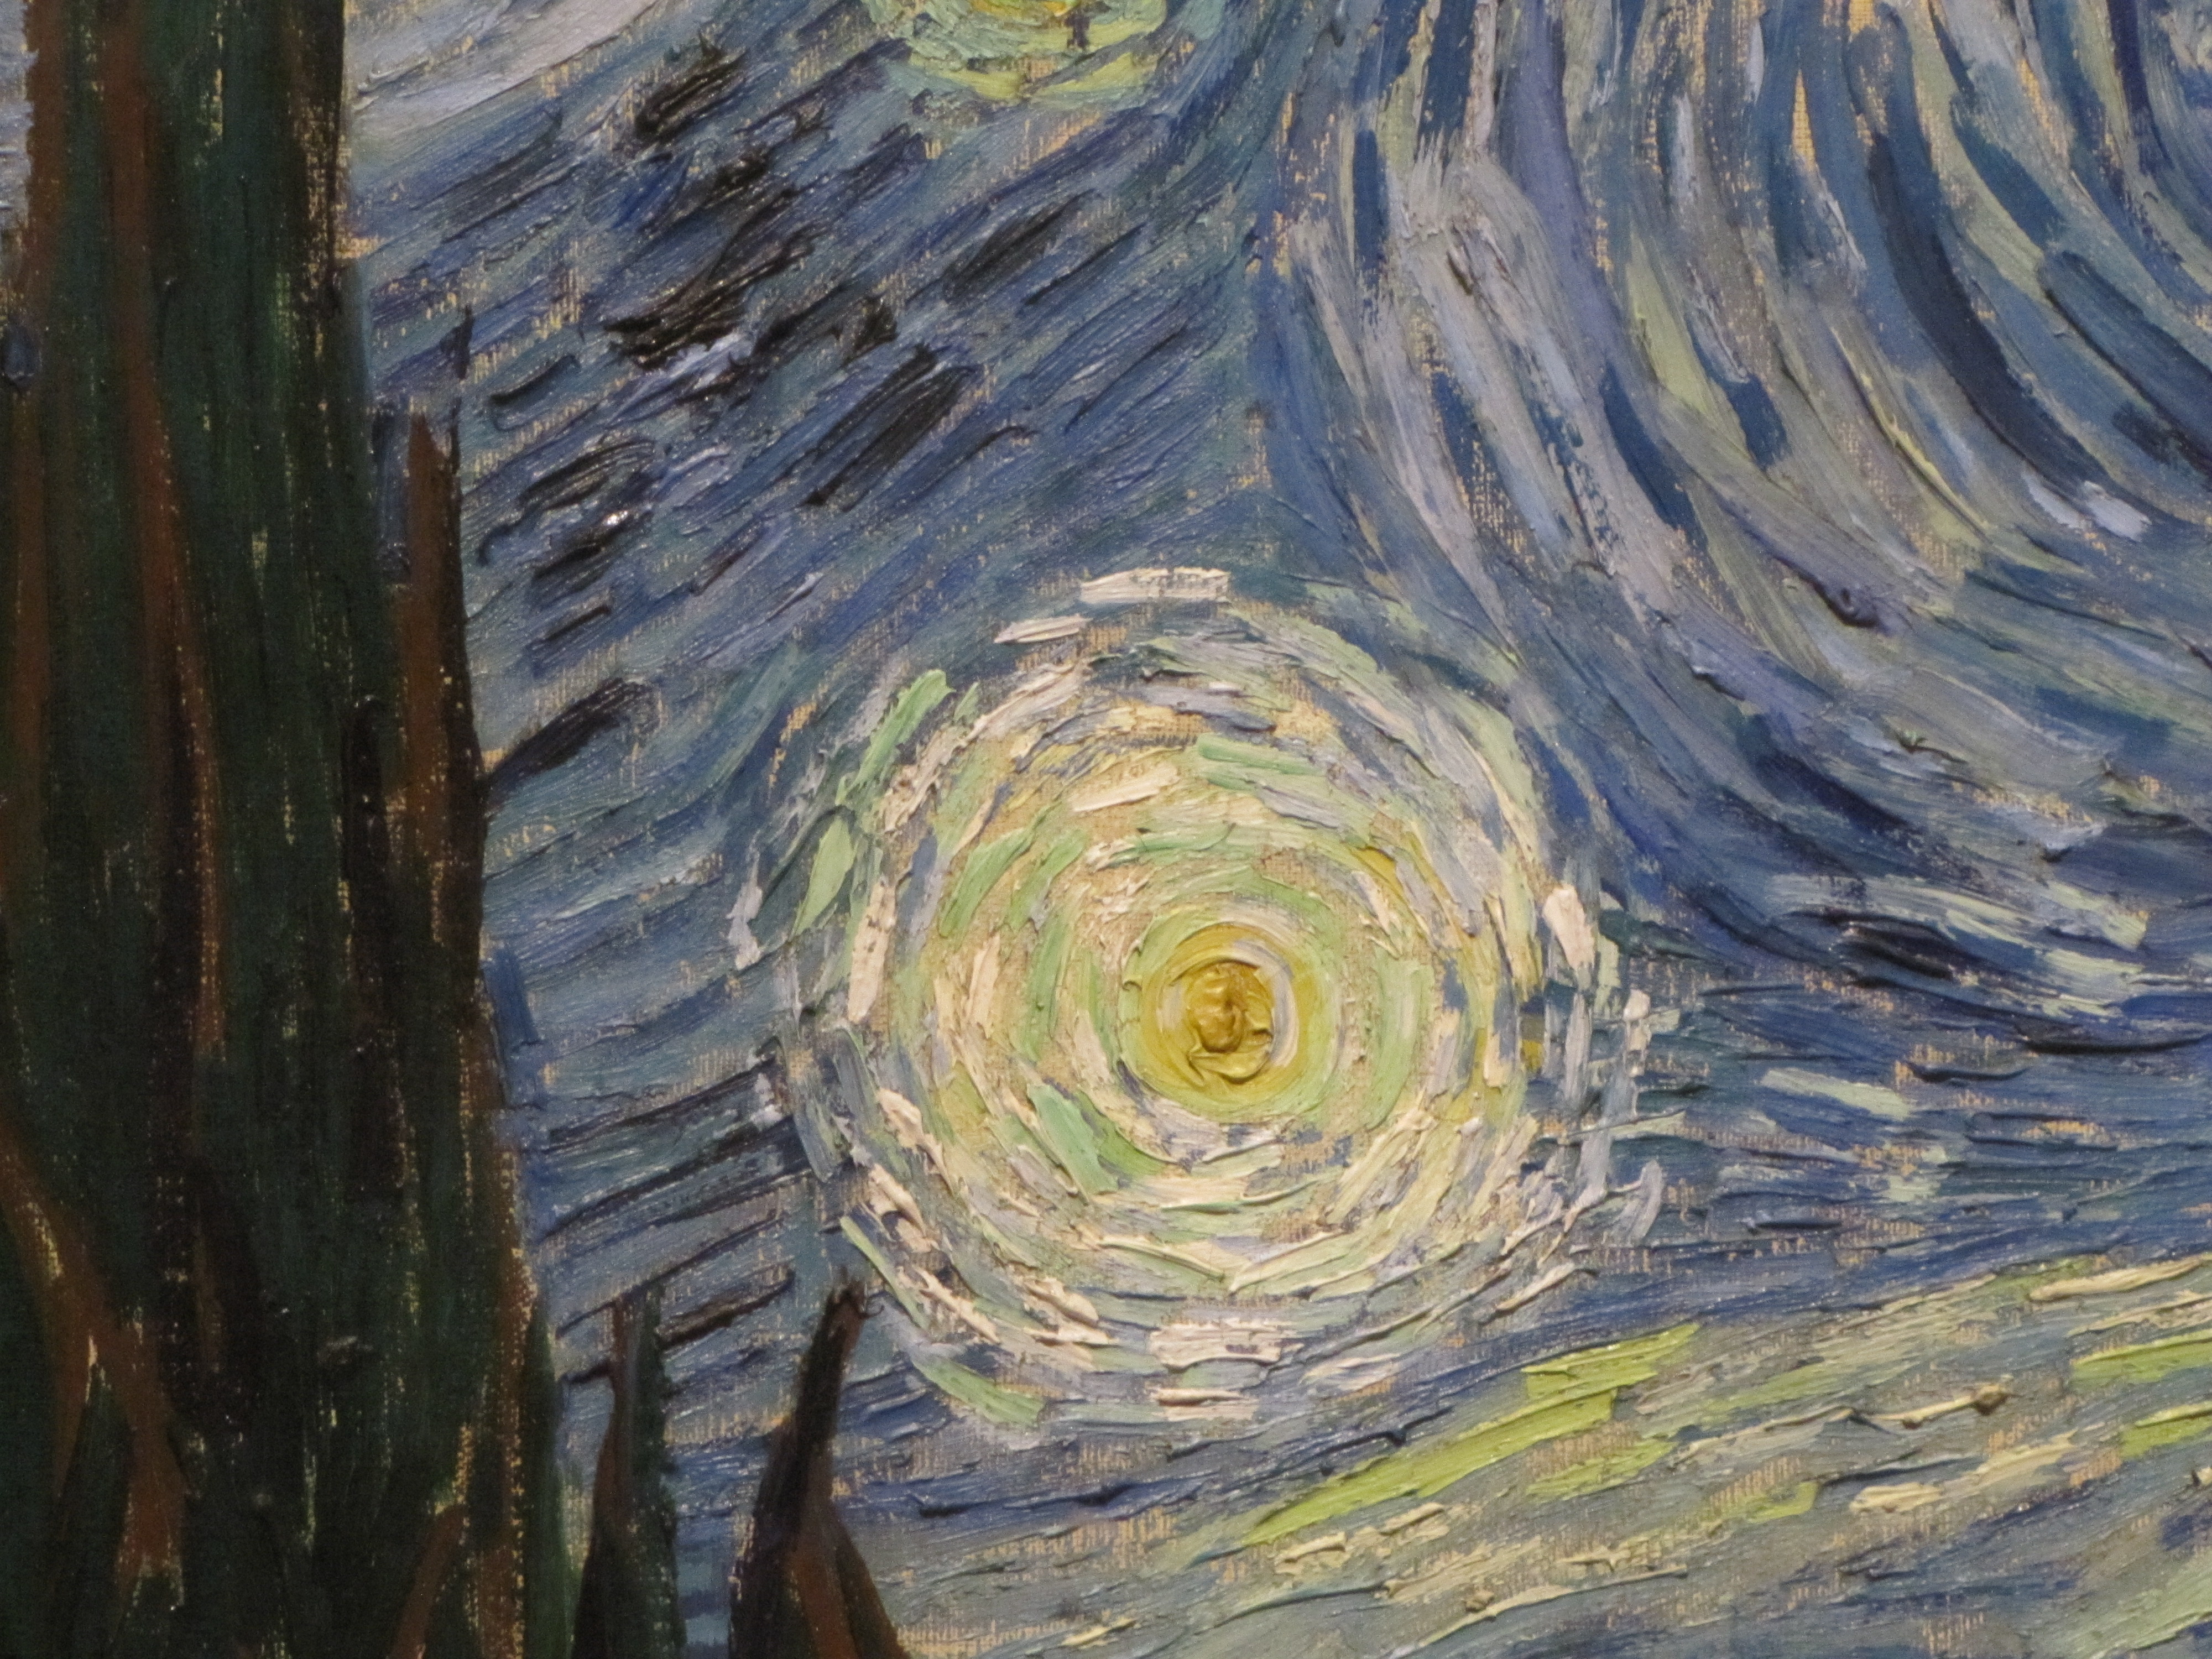 van gogh starry night meaning